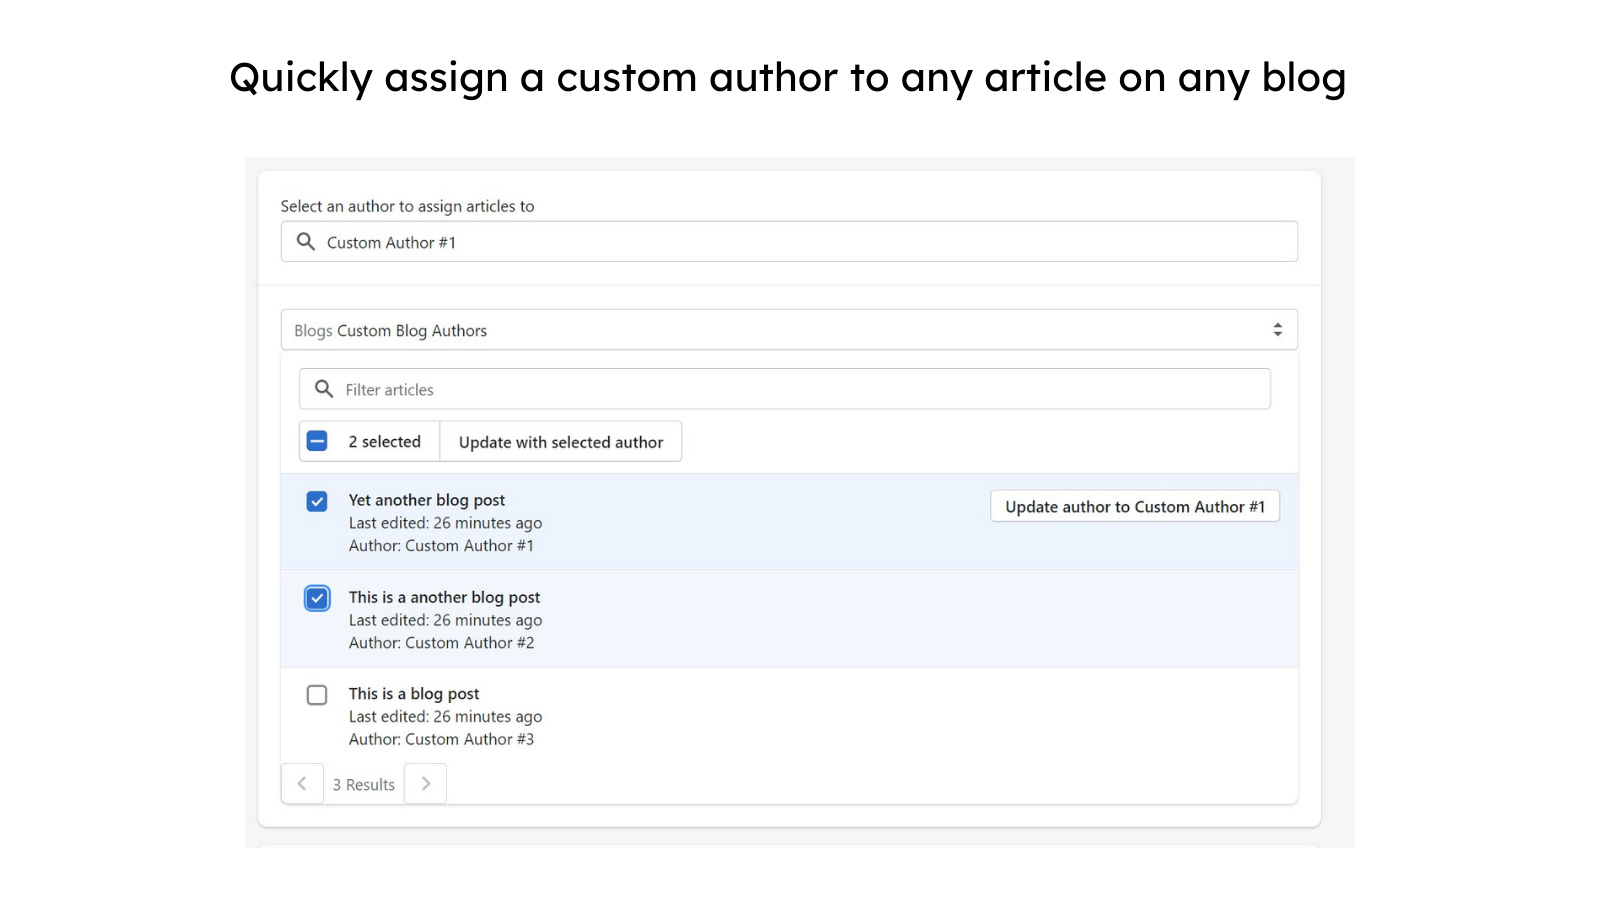 Quickly assign a custom author to any article on any blog